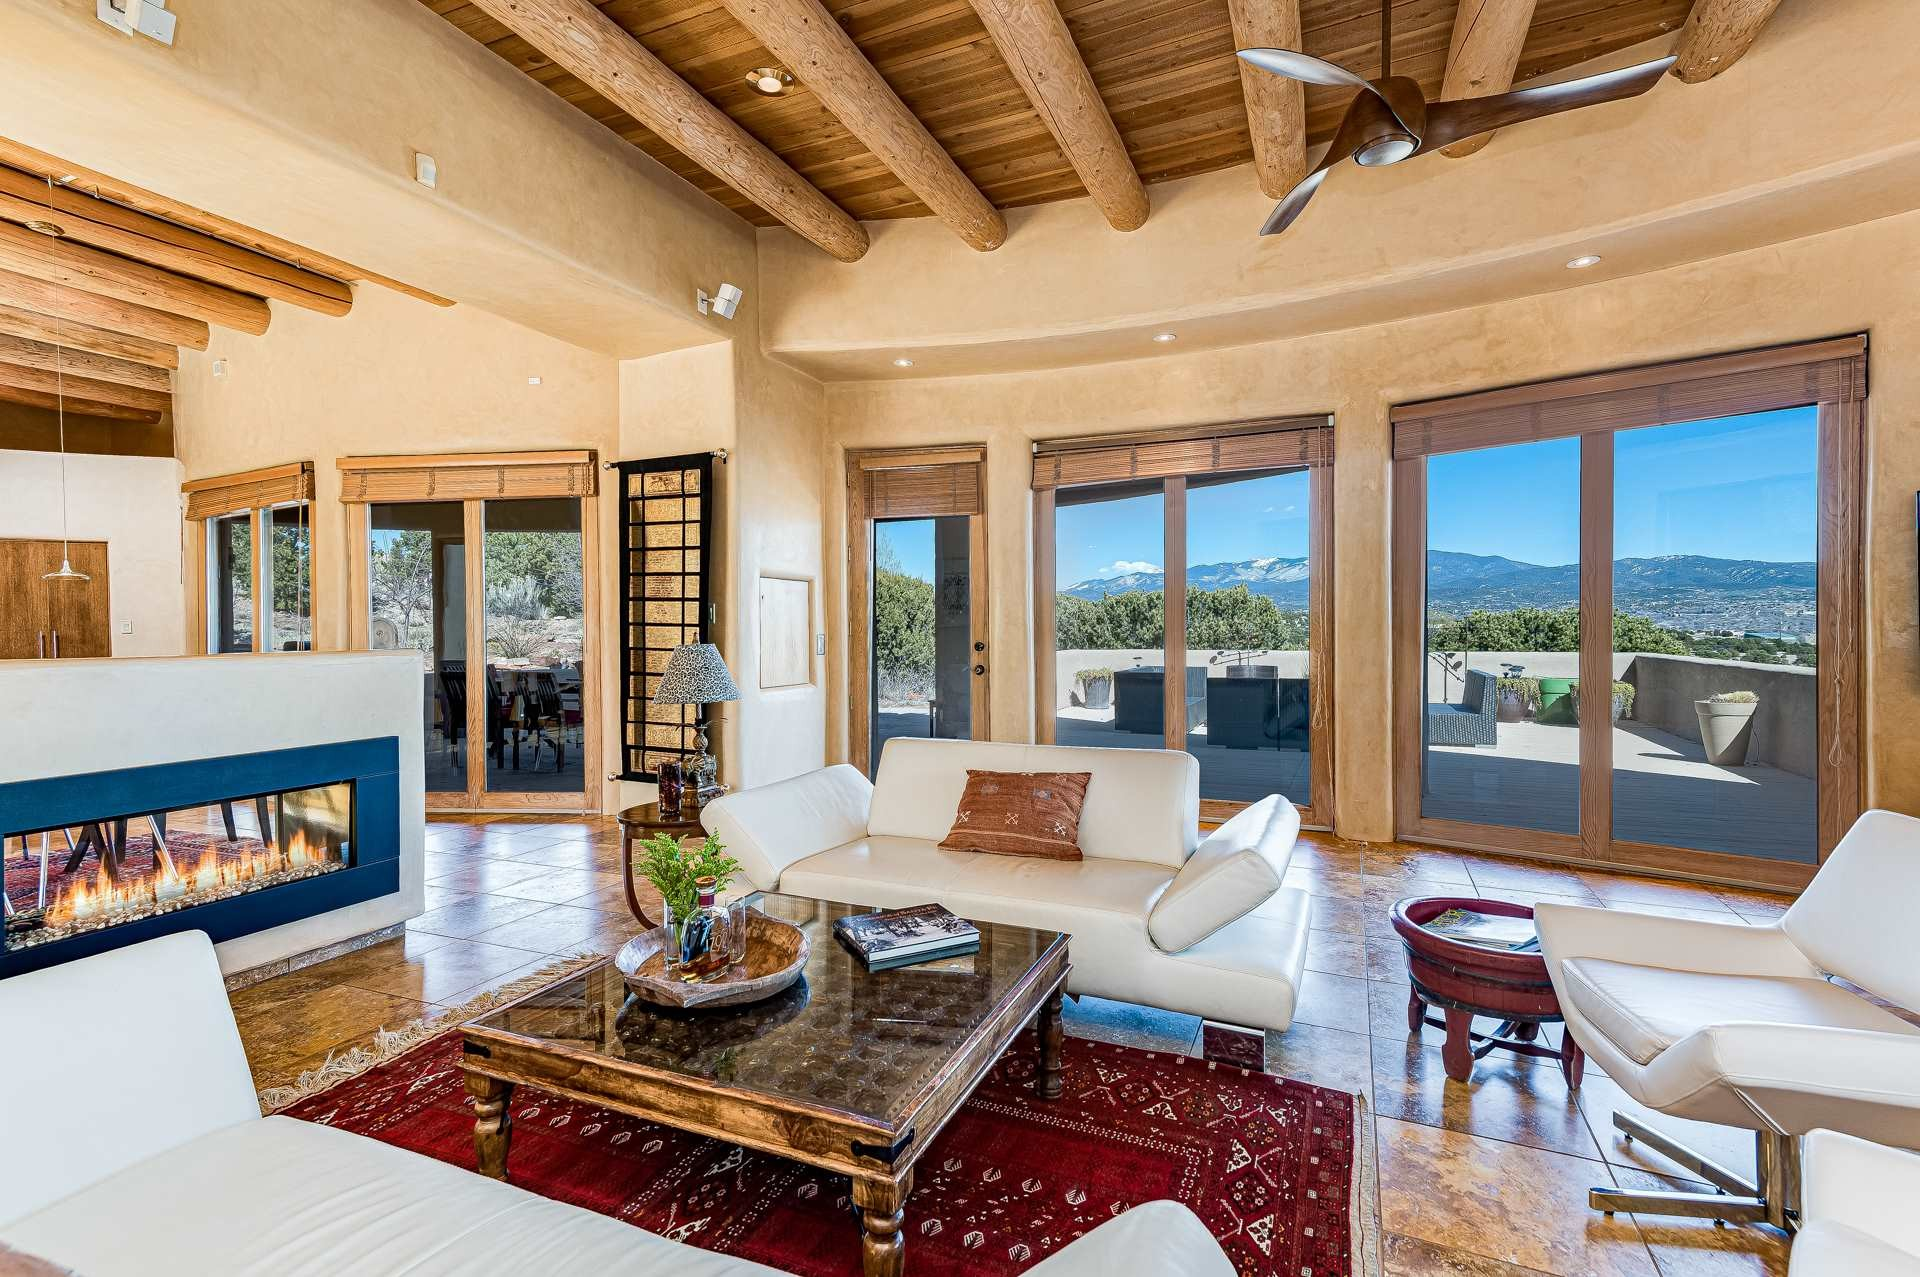 1611 city lights a luxury single family home for sale in santa fe, new mexico property id 202000792 christie s international real estate